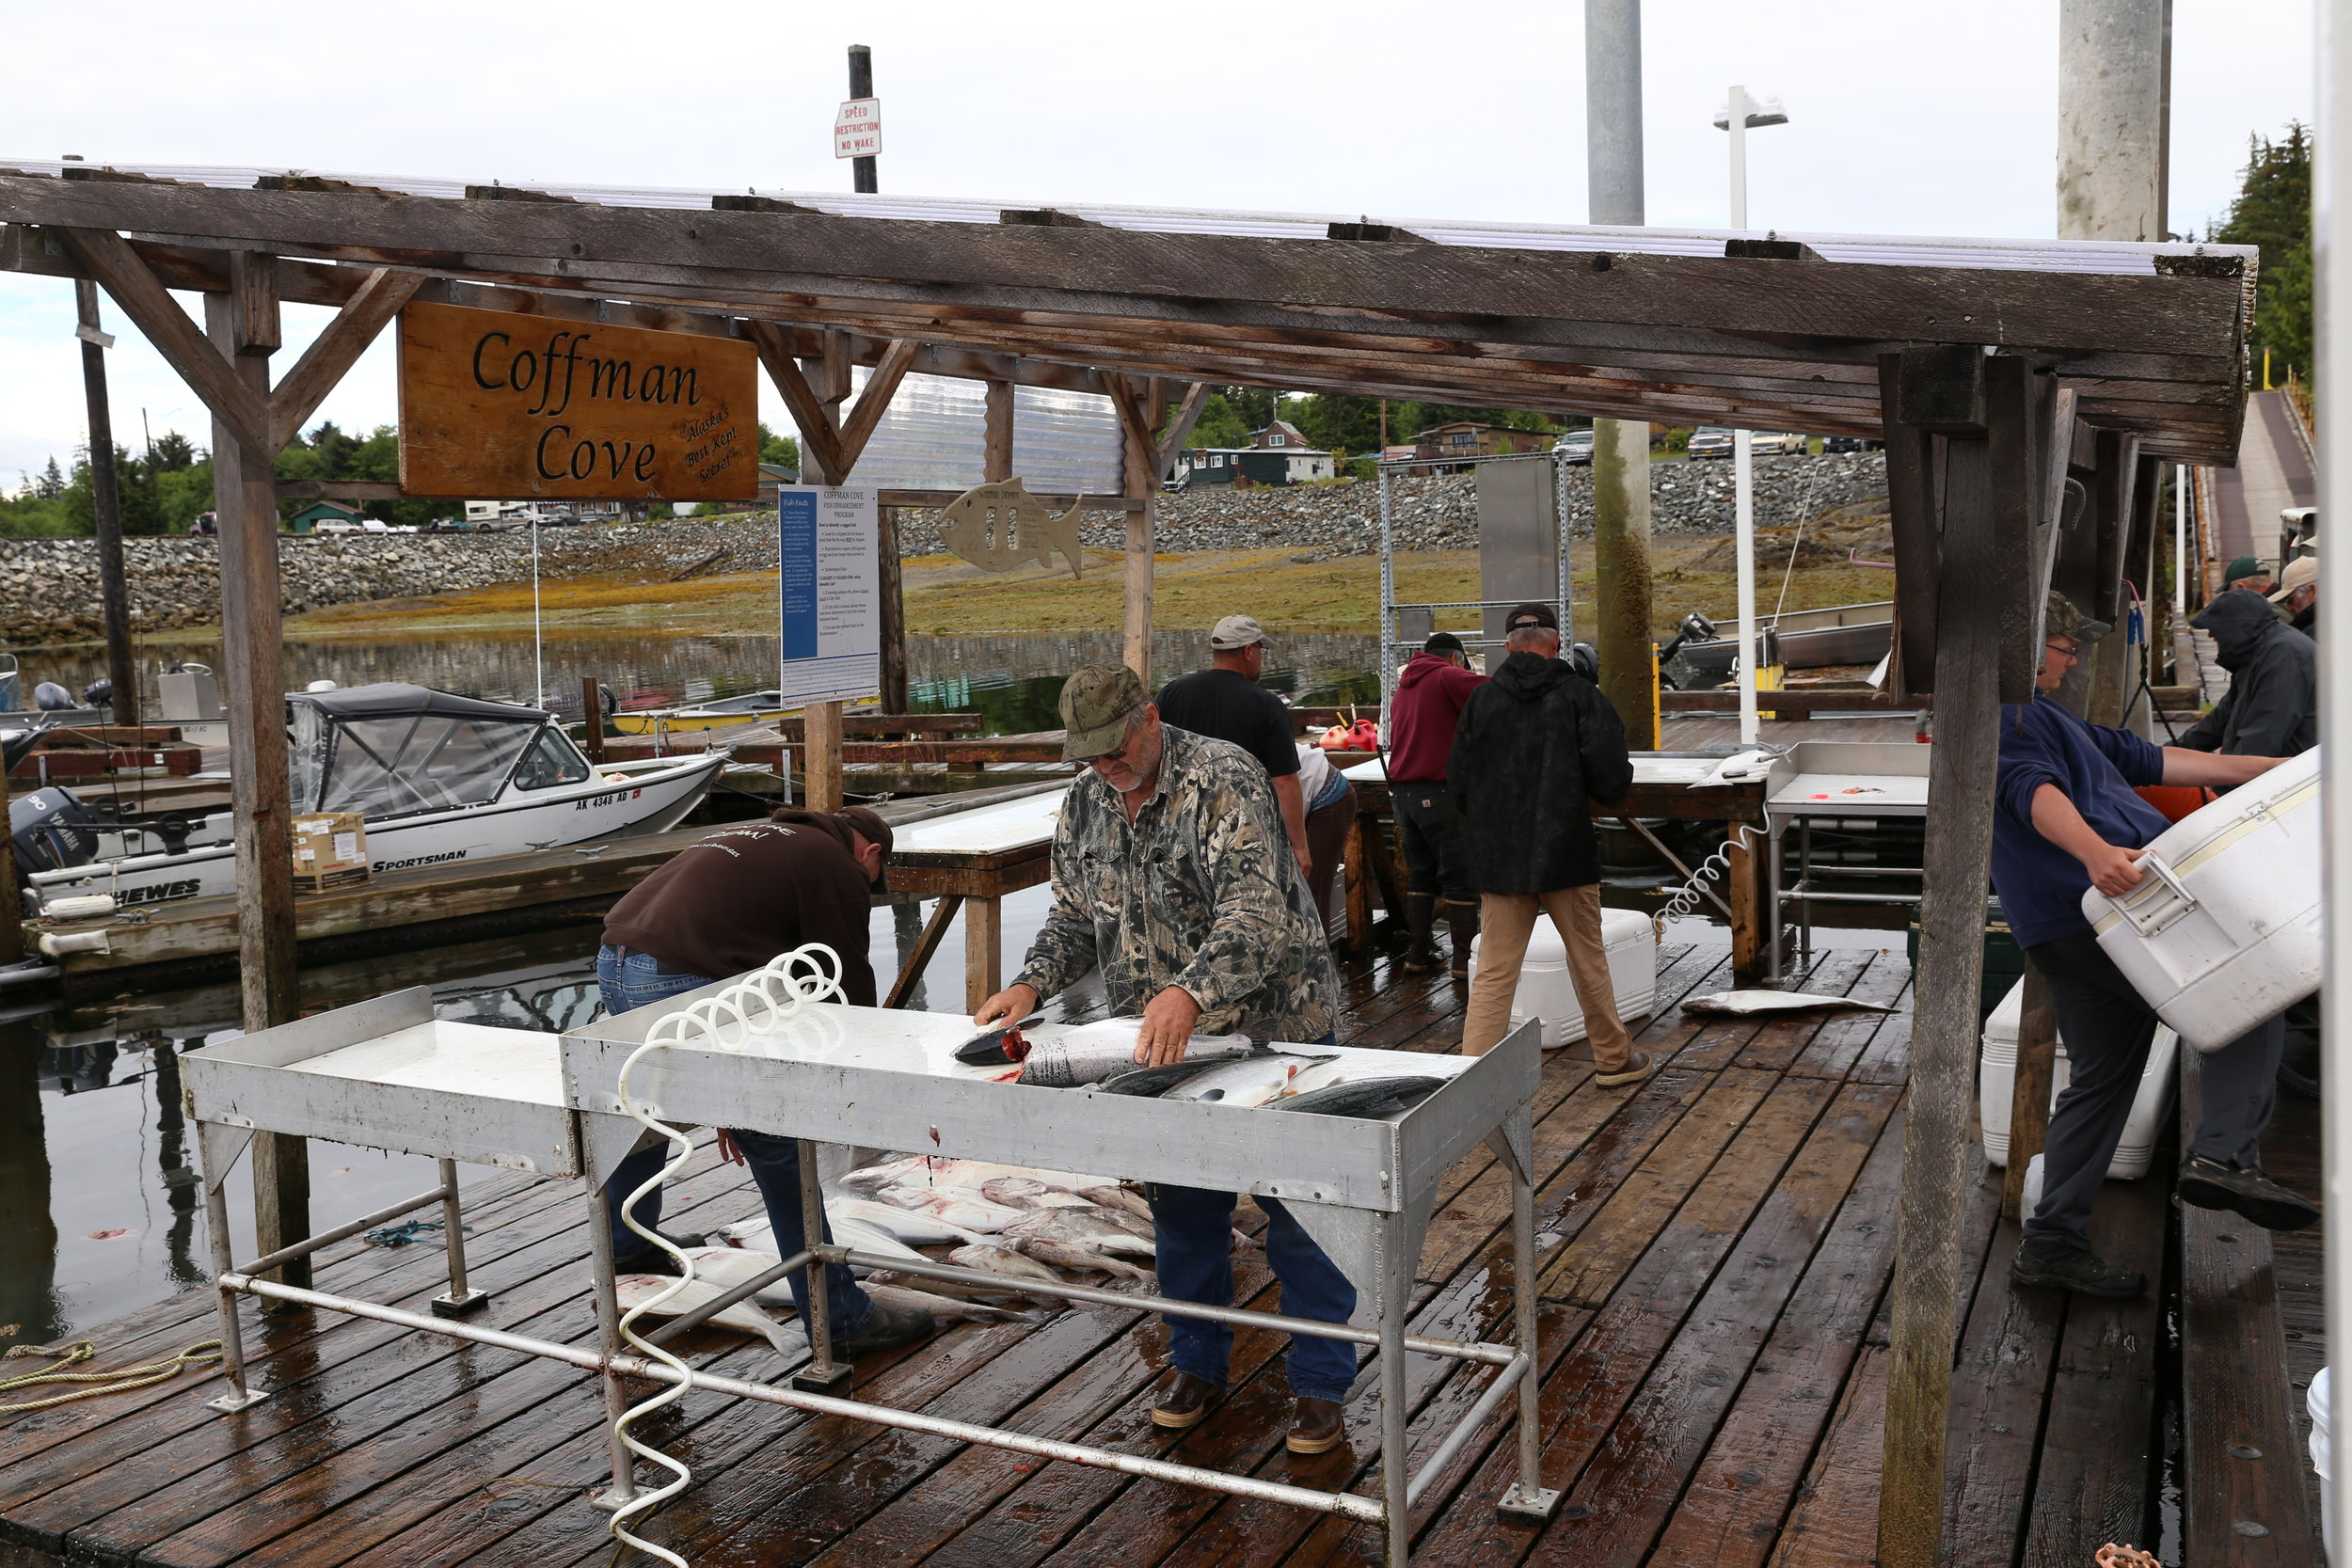 The Coffman Cove fish cleaning station can be a busy place in summer